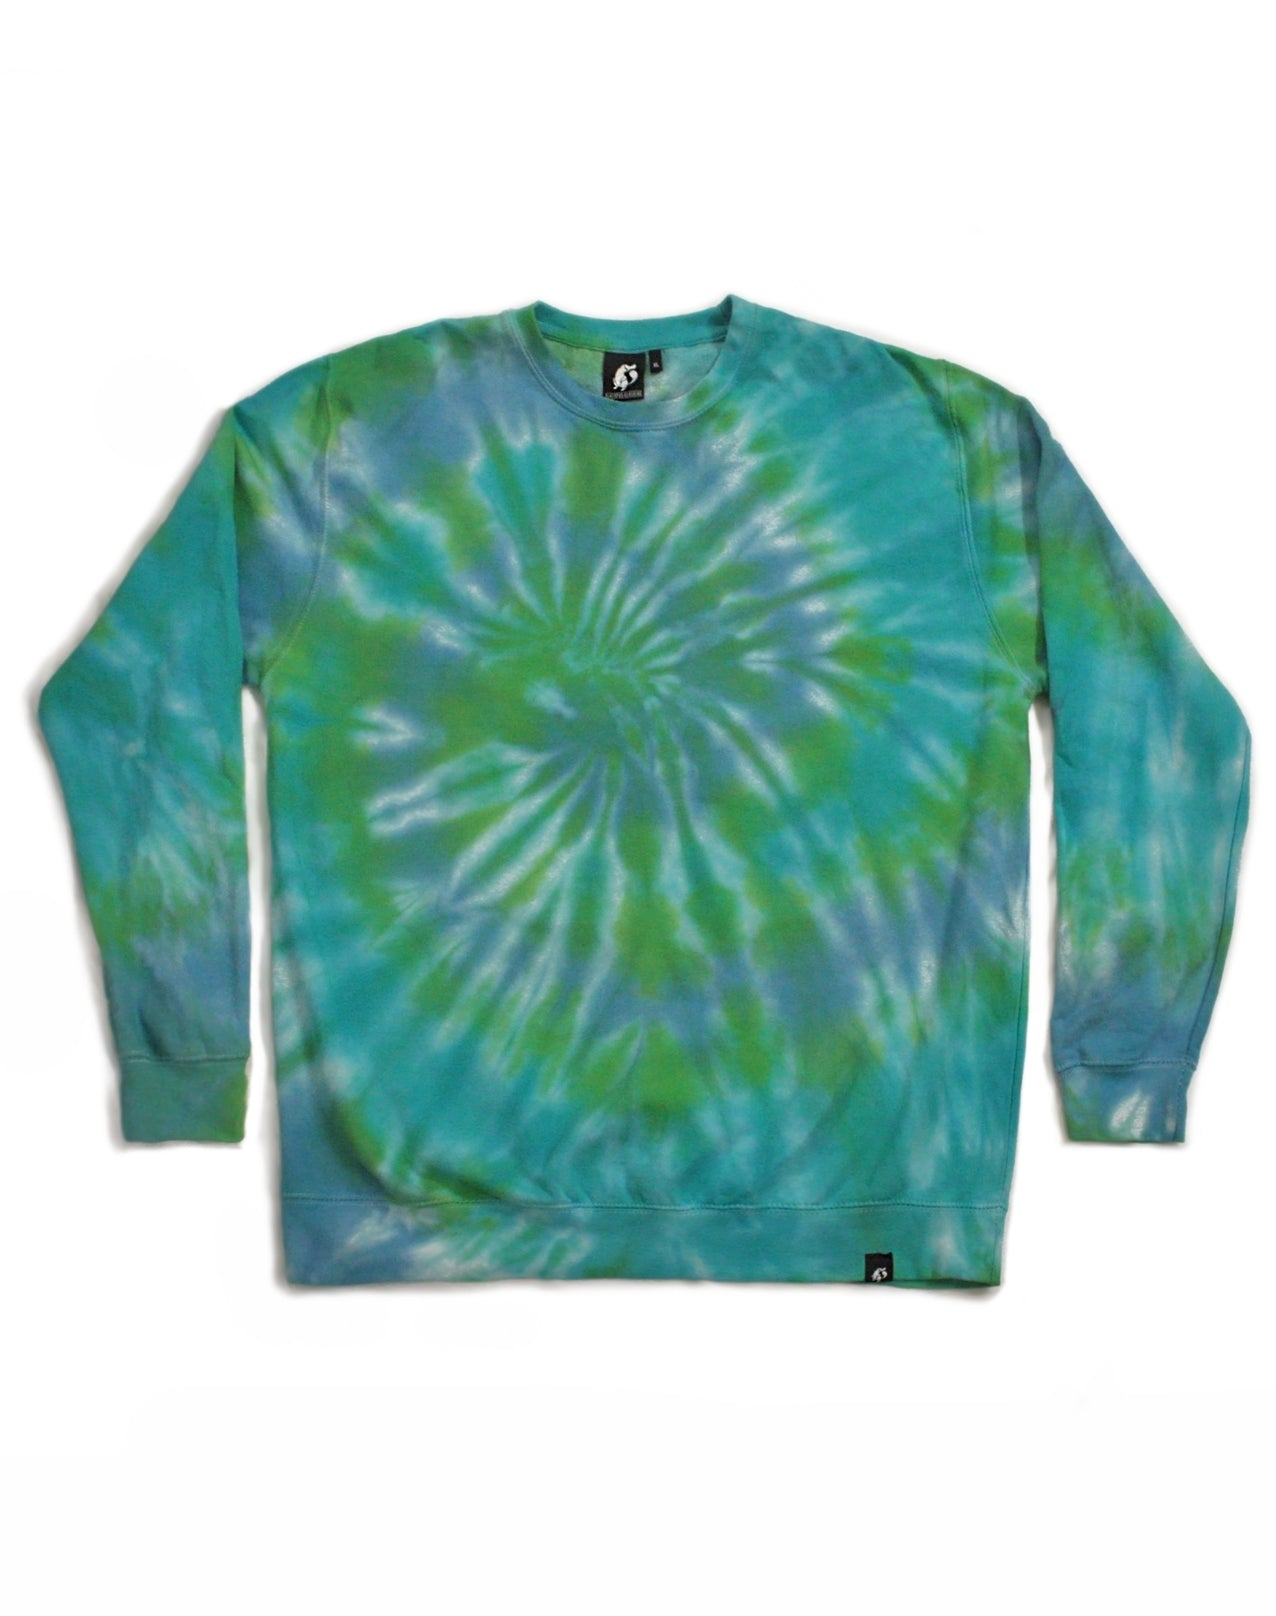 Tie Dye Multi Blue and Green Spiral Sweatshirt - Size XL